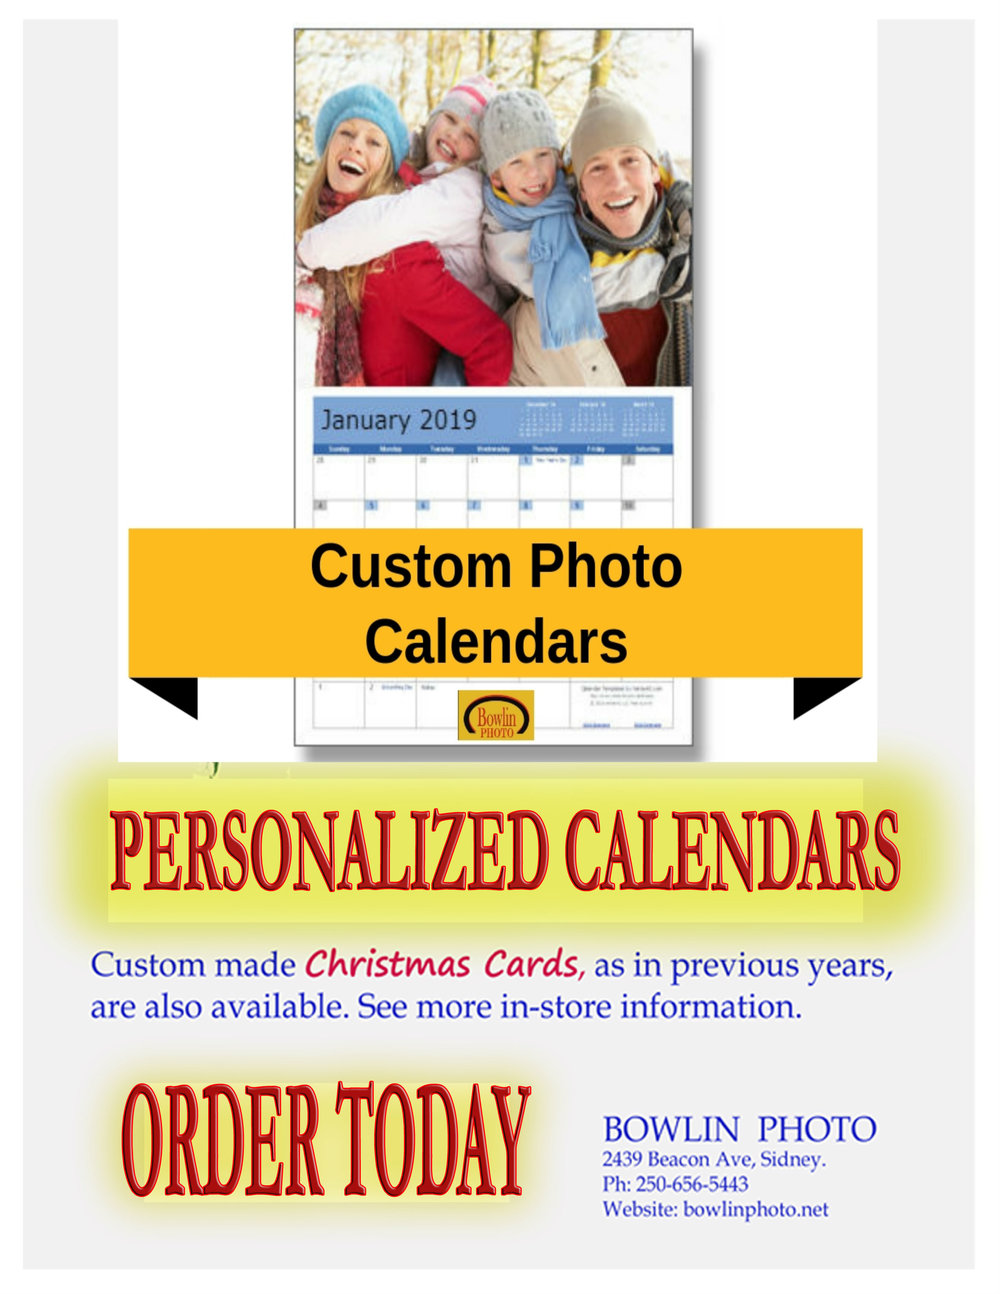 Personalized Calendars - Bowlin Photo.jpg